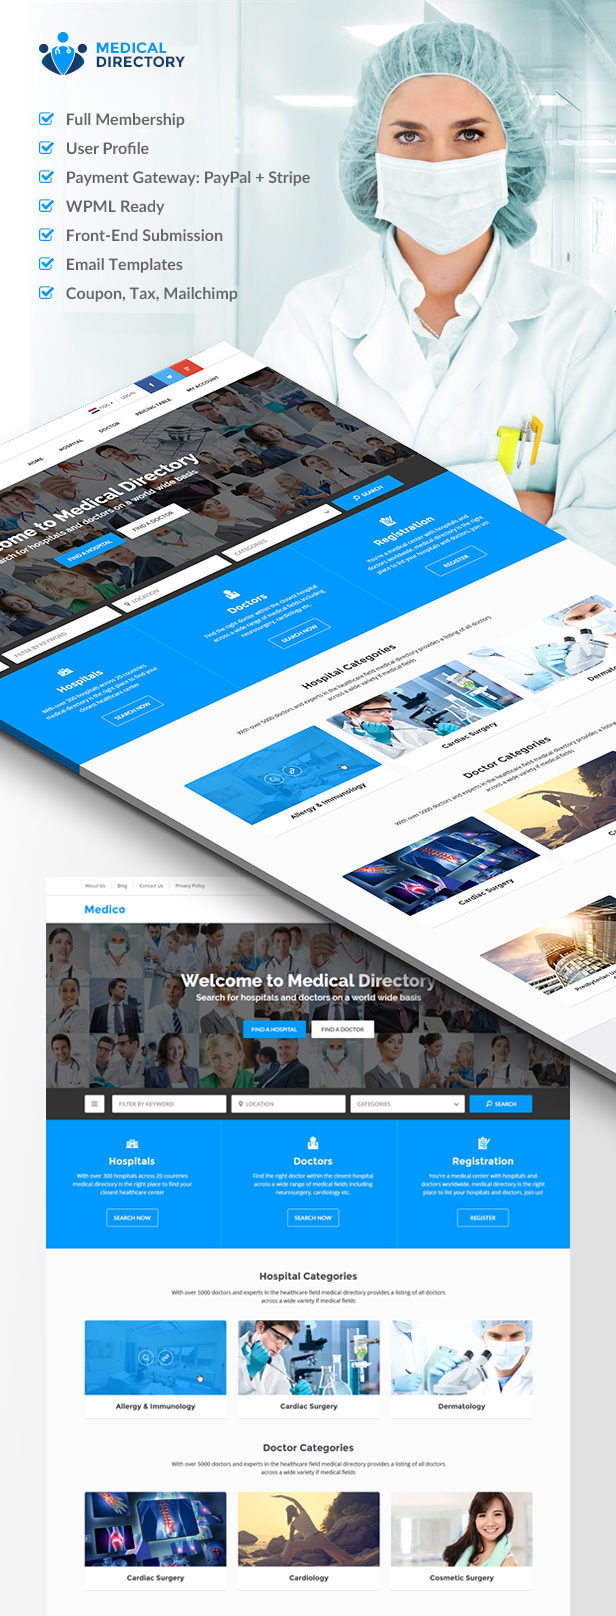 Medical Directory - Hospitals & Doctors Listing Theme - 2